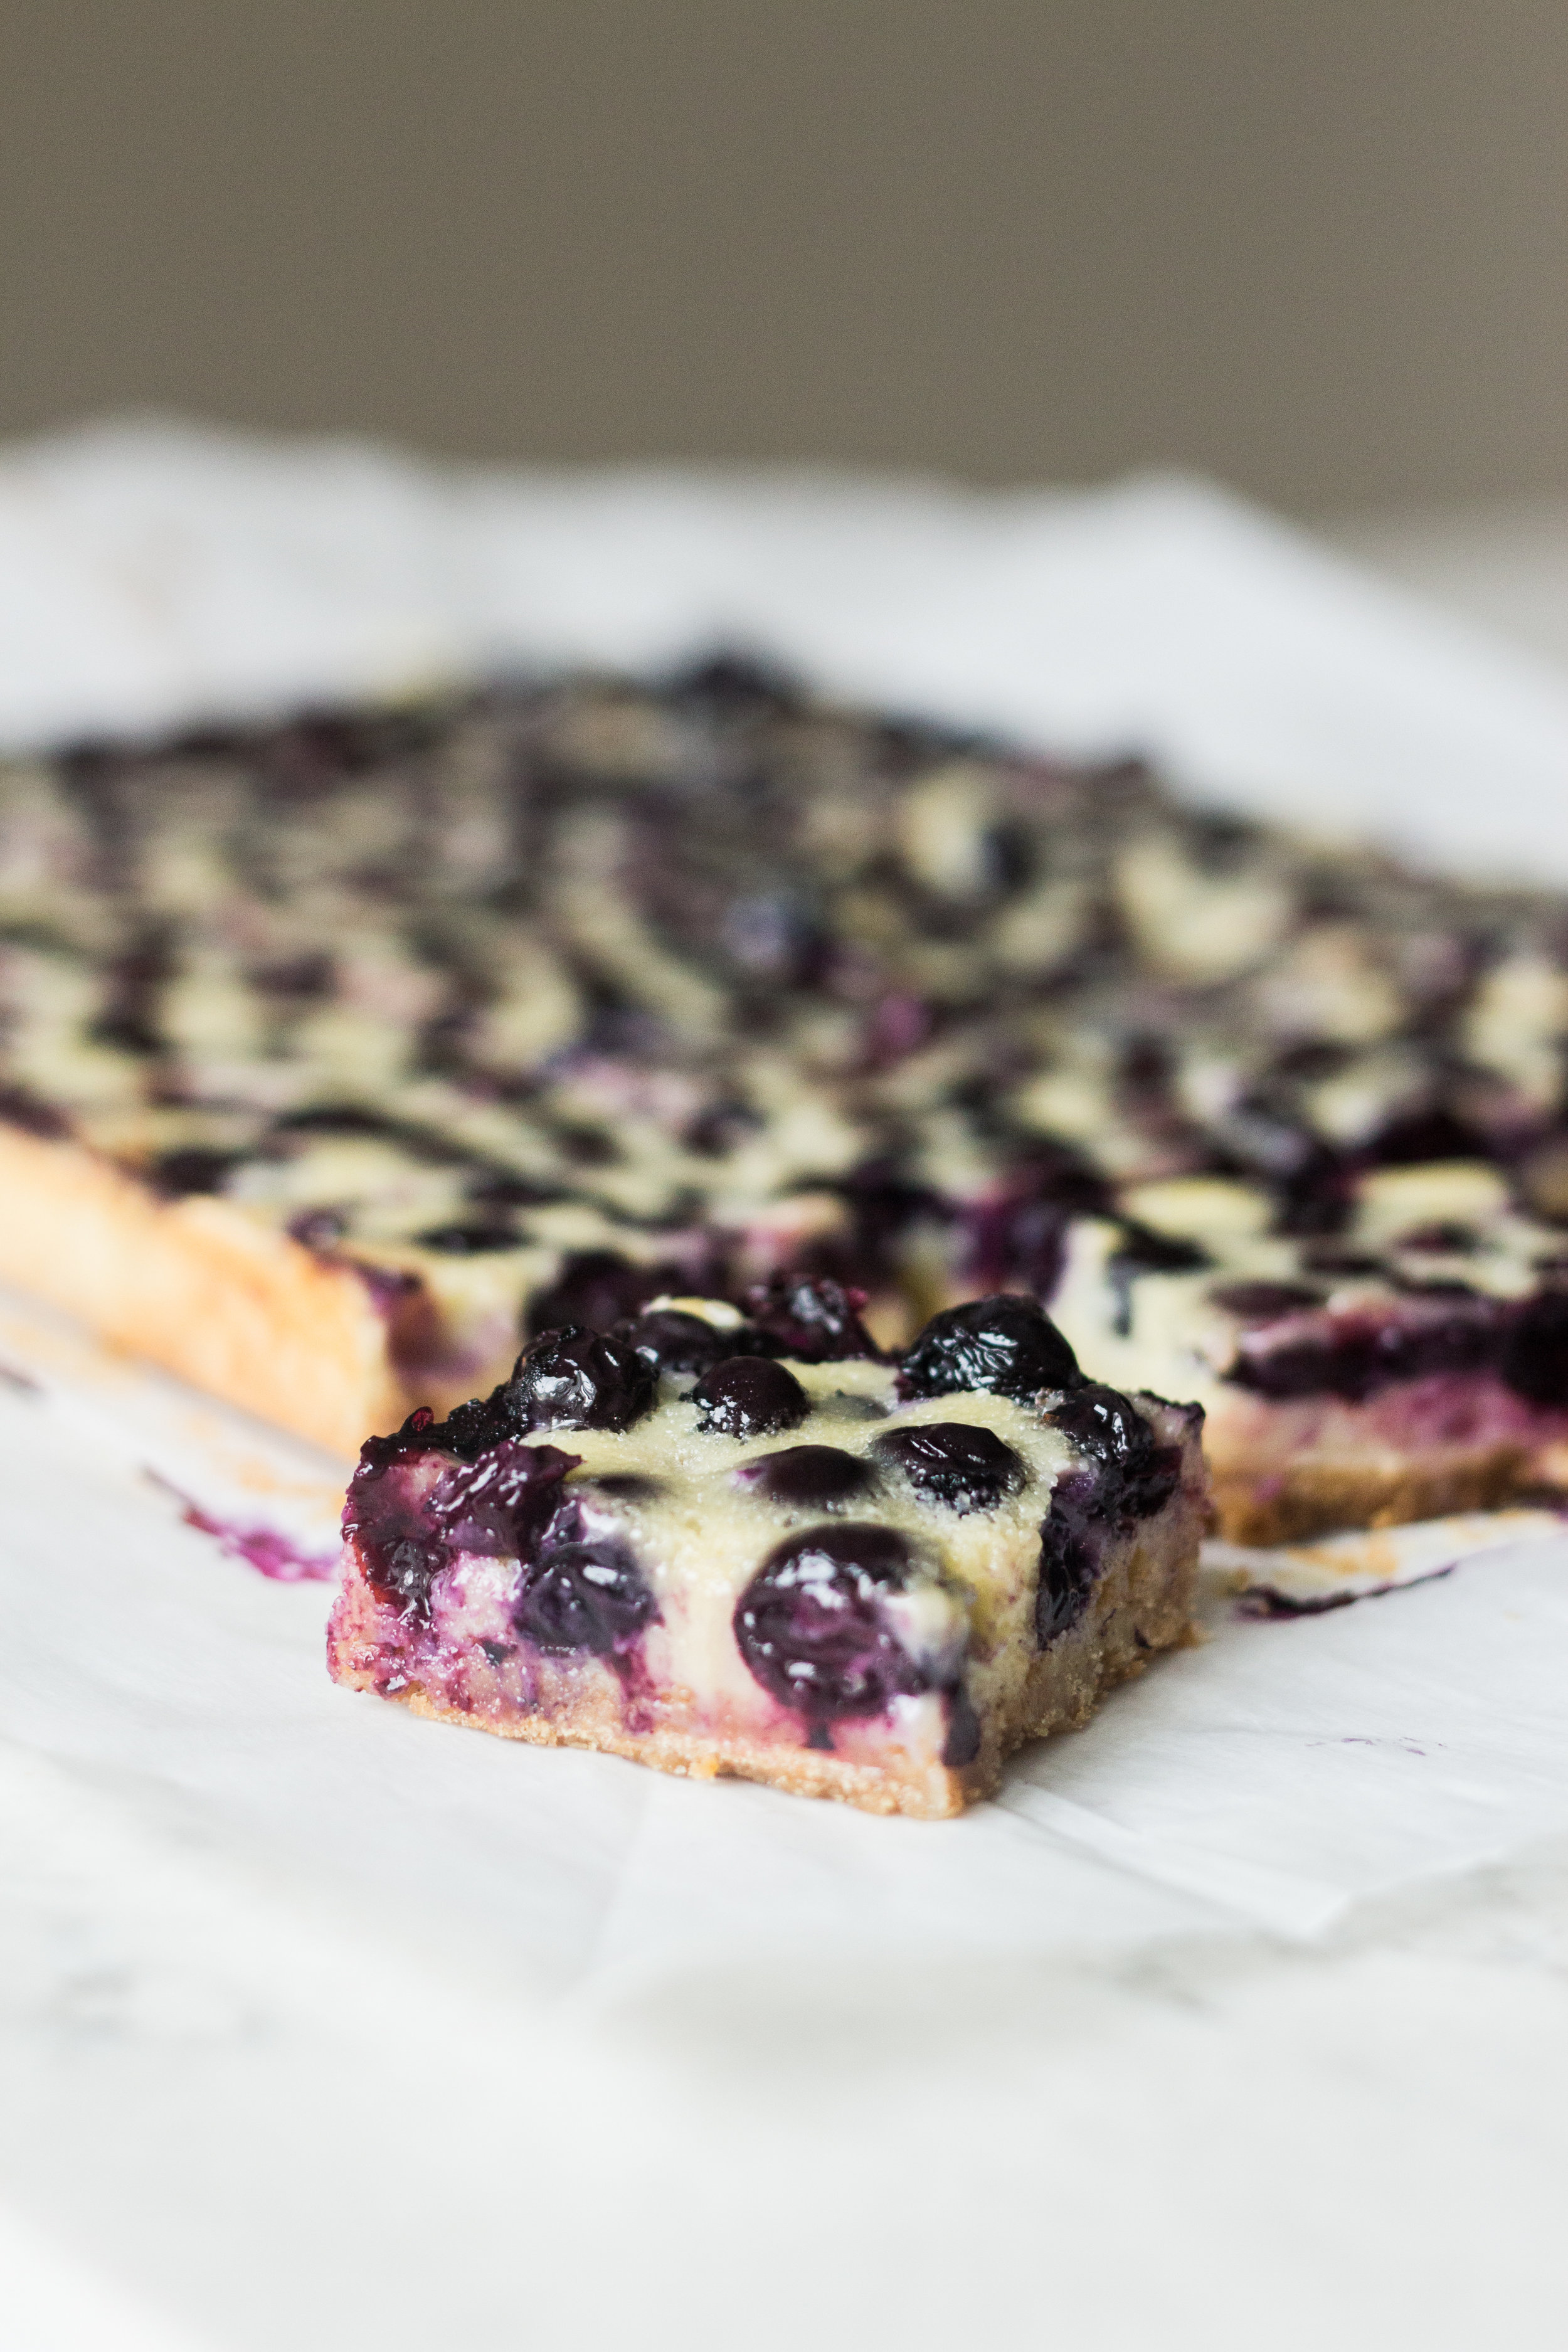 blueberry custard pie bars - makes one 9x13-inch panfrom butter bakingcrust2 cups graham cracker crumbs (28 squares)1/4 cup granulated sugar1/2 cup (1 stick) unsalted butter, meltedcustard filling3 eggs1 1/4 cups granulated sugar3/4 cups sour cream1/2 cup + 2 tablespoons all-purpose flour3 tablespoons cornstarchpinch salt1 teaspoon vanilla extract18 oz blueberries, fresh is preferred